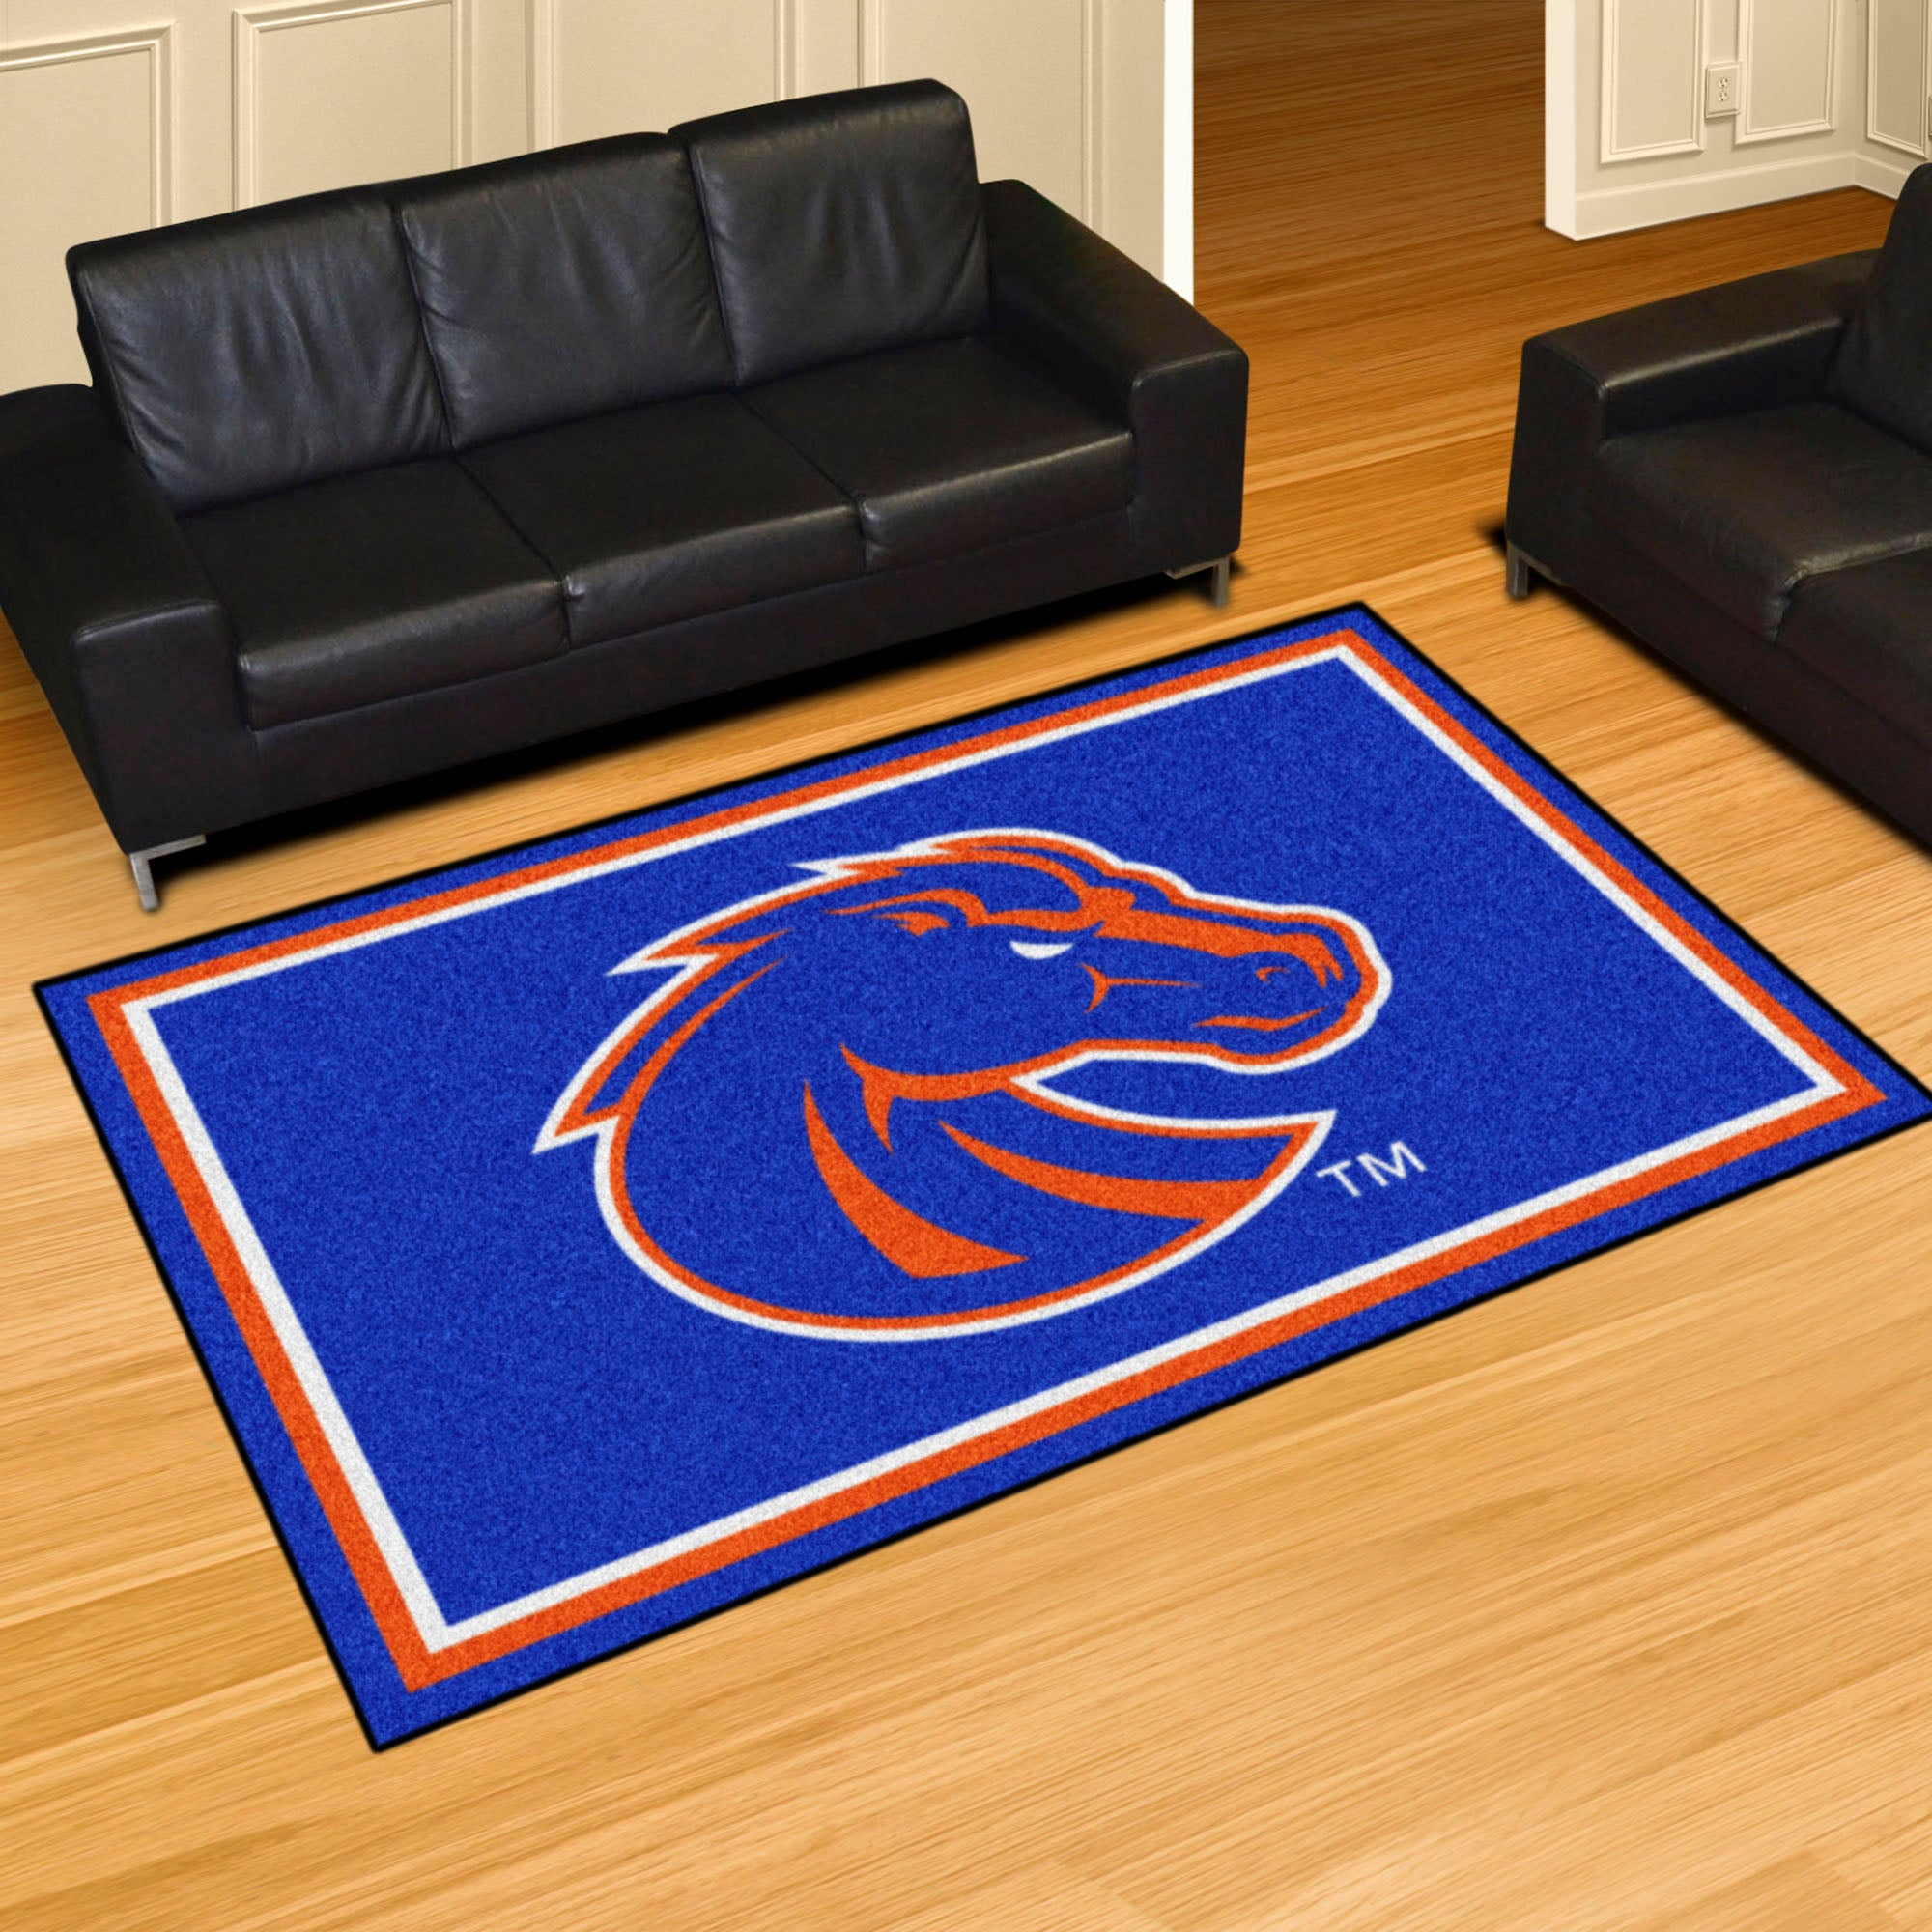 Boise State University Plush Rug  College Area Rug - Fan Rugs